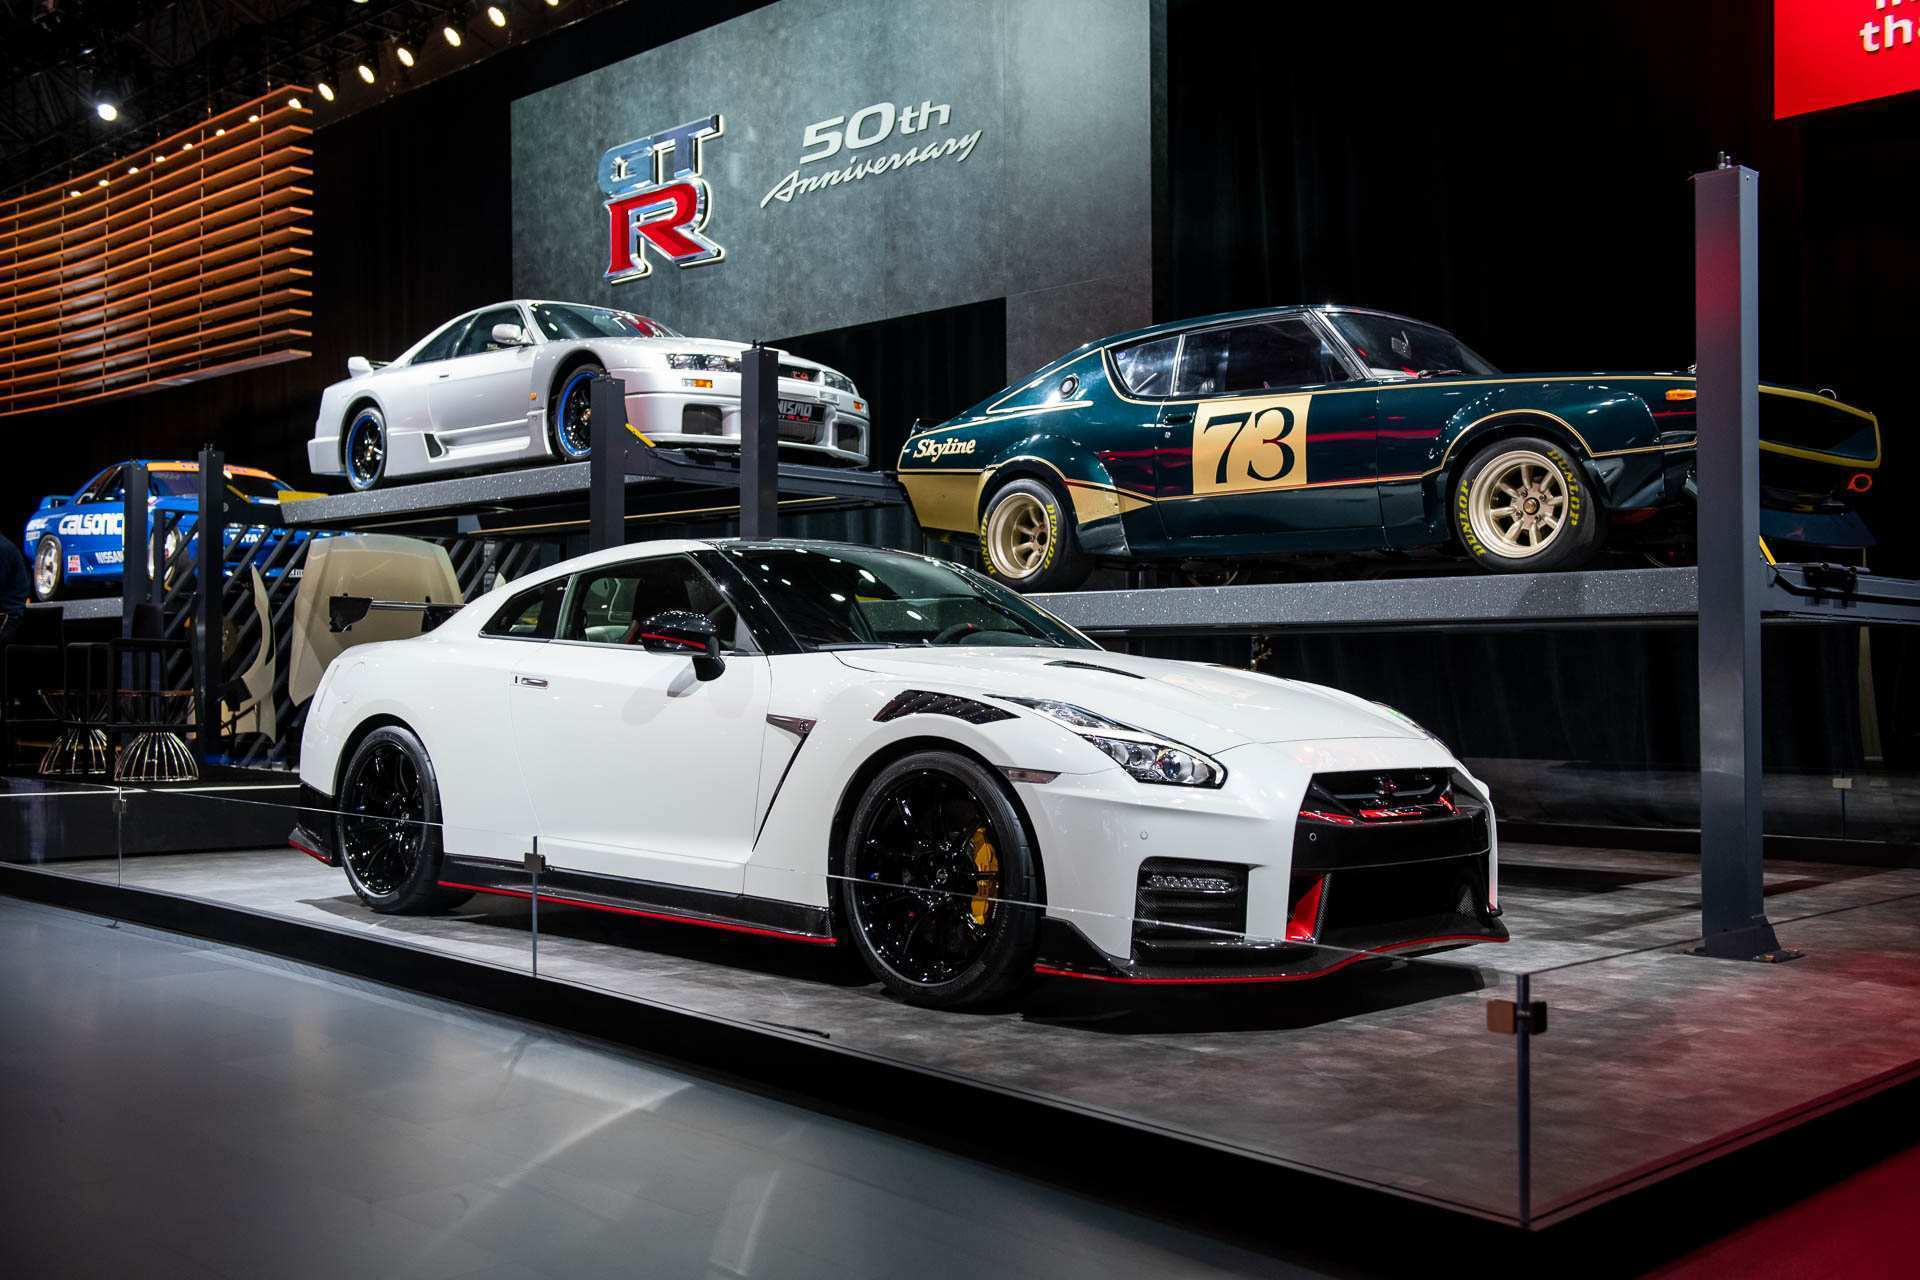 65 The Best 2020 Nissan Gt R Price And Review